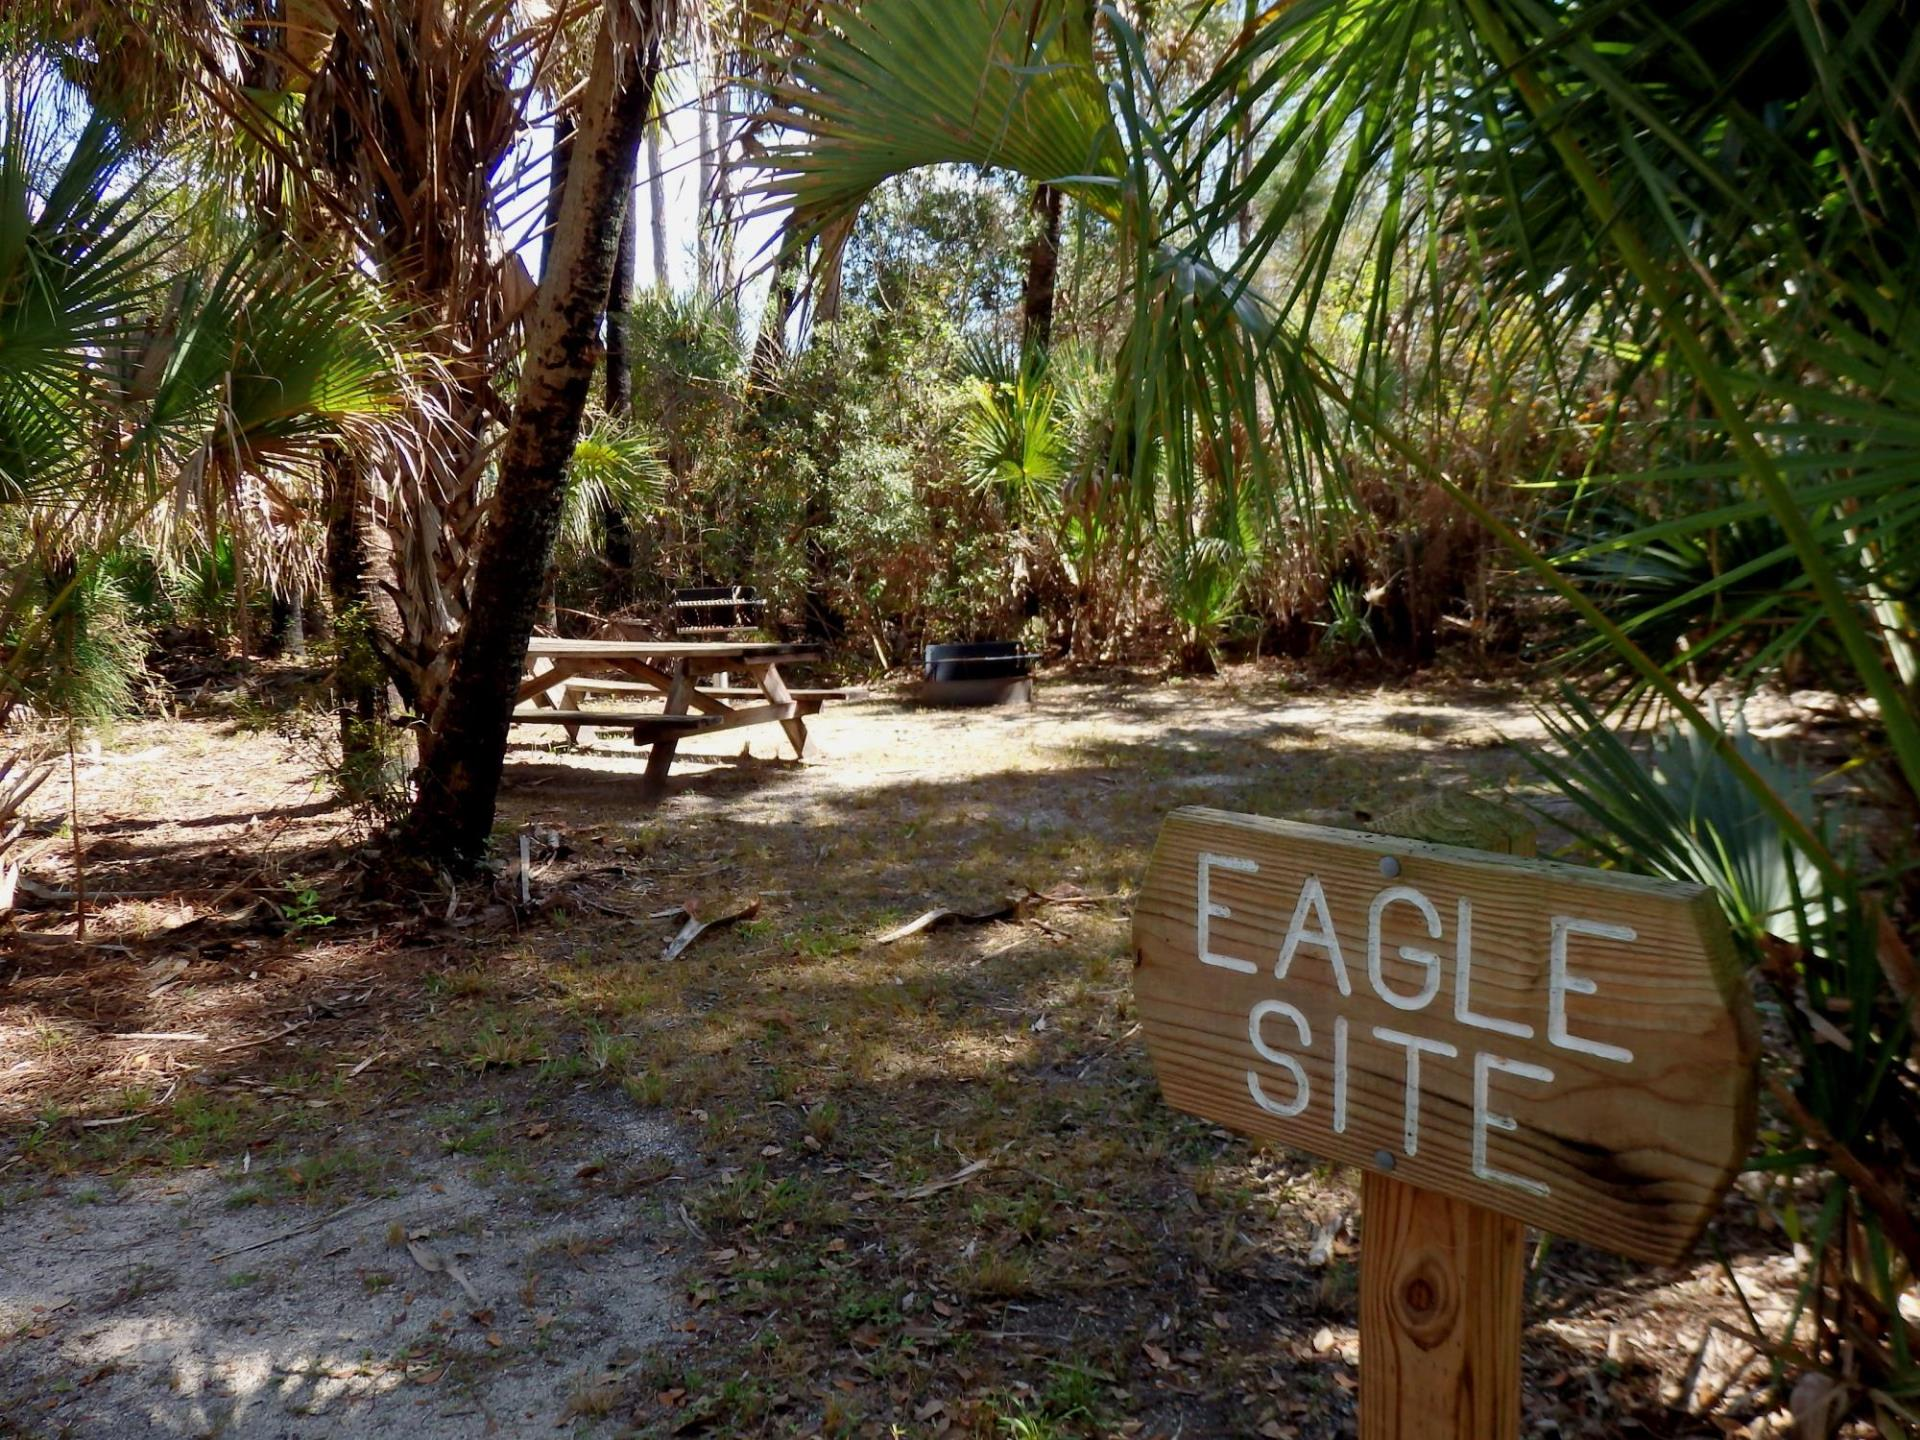 T. Marby Carlton, Jr. Memorial Reserve-Cabbage Palm Loop Eagle Site